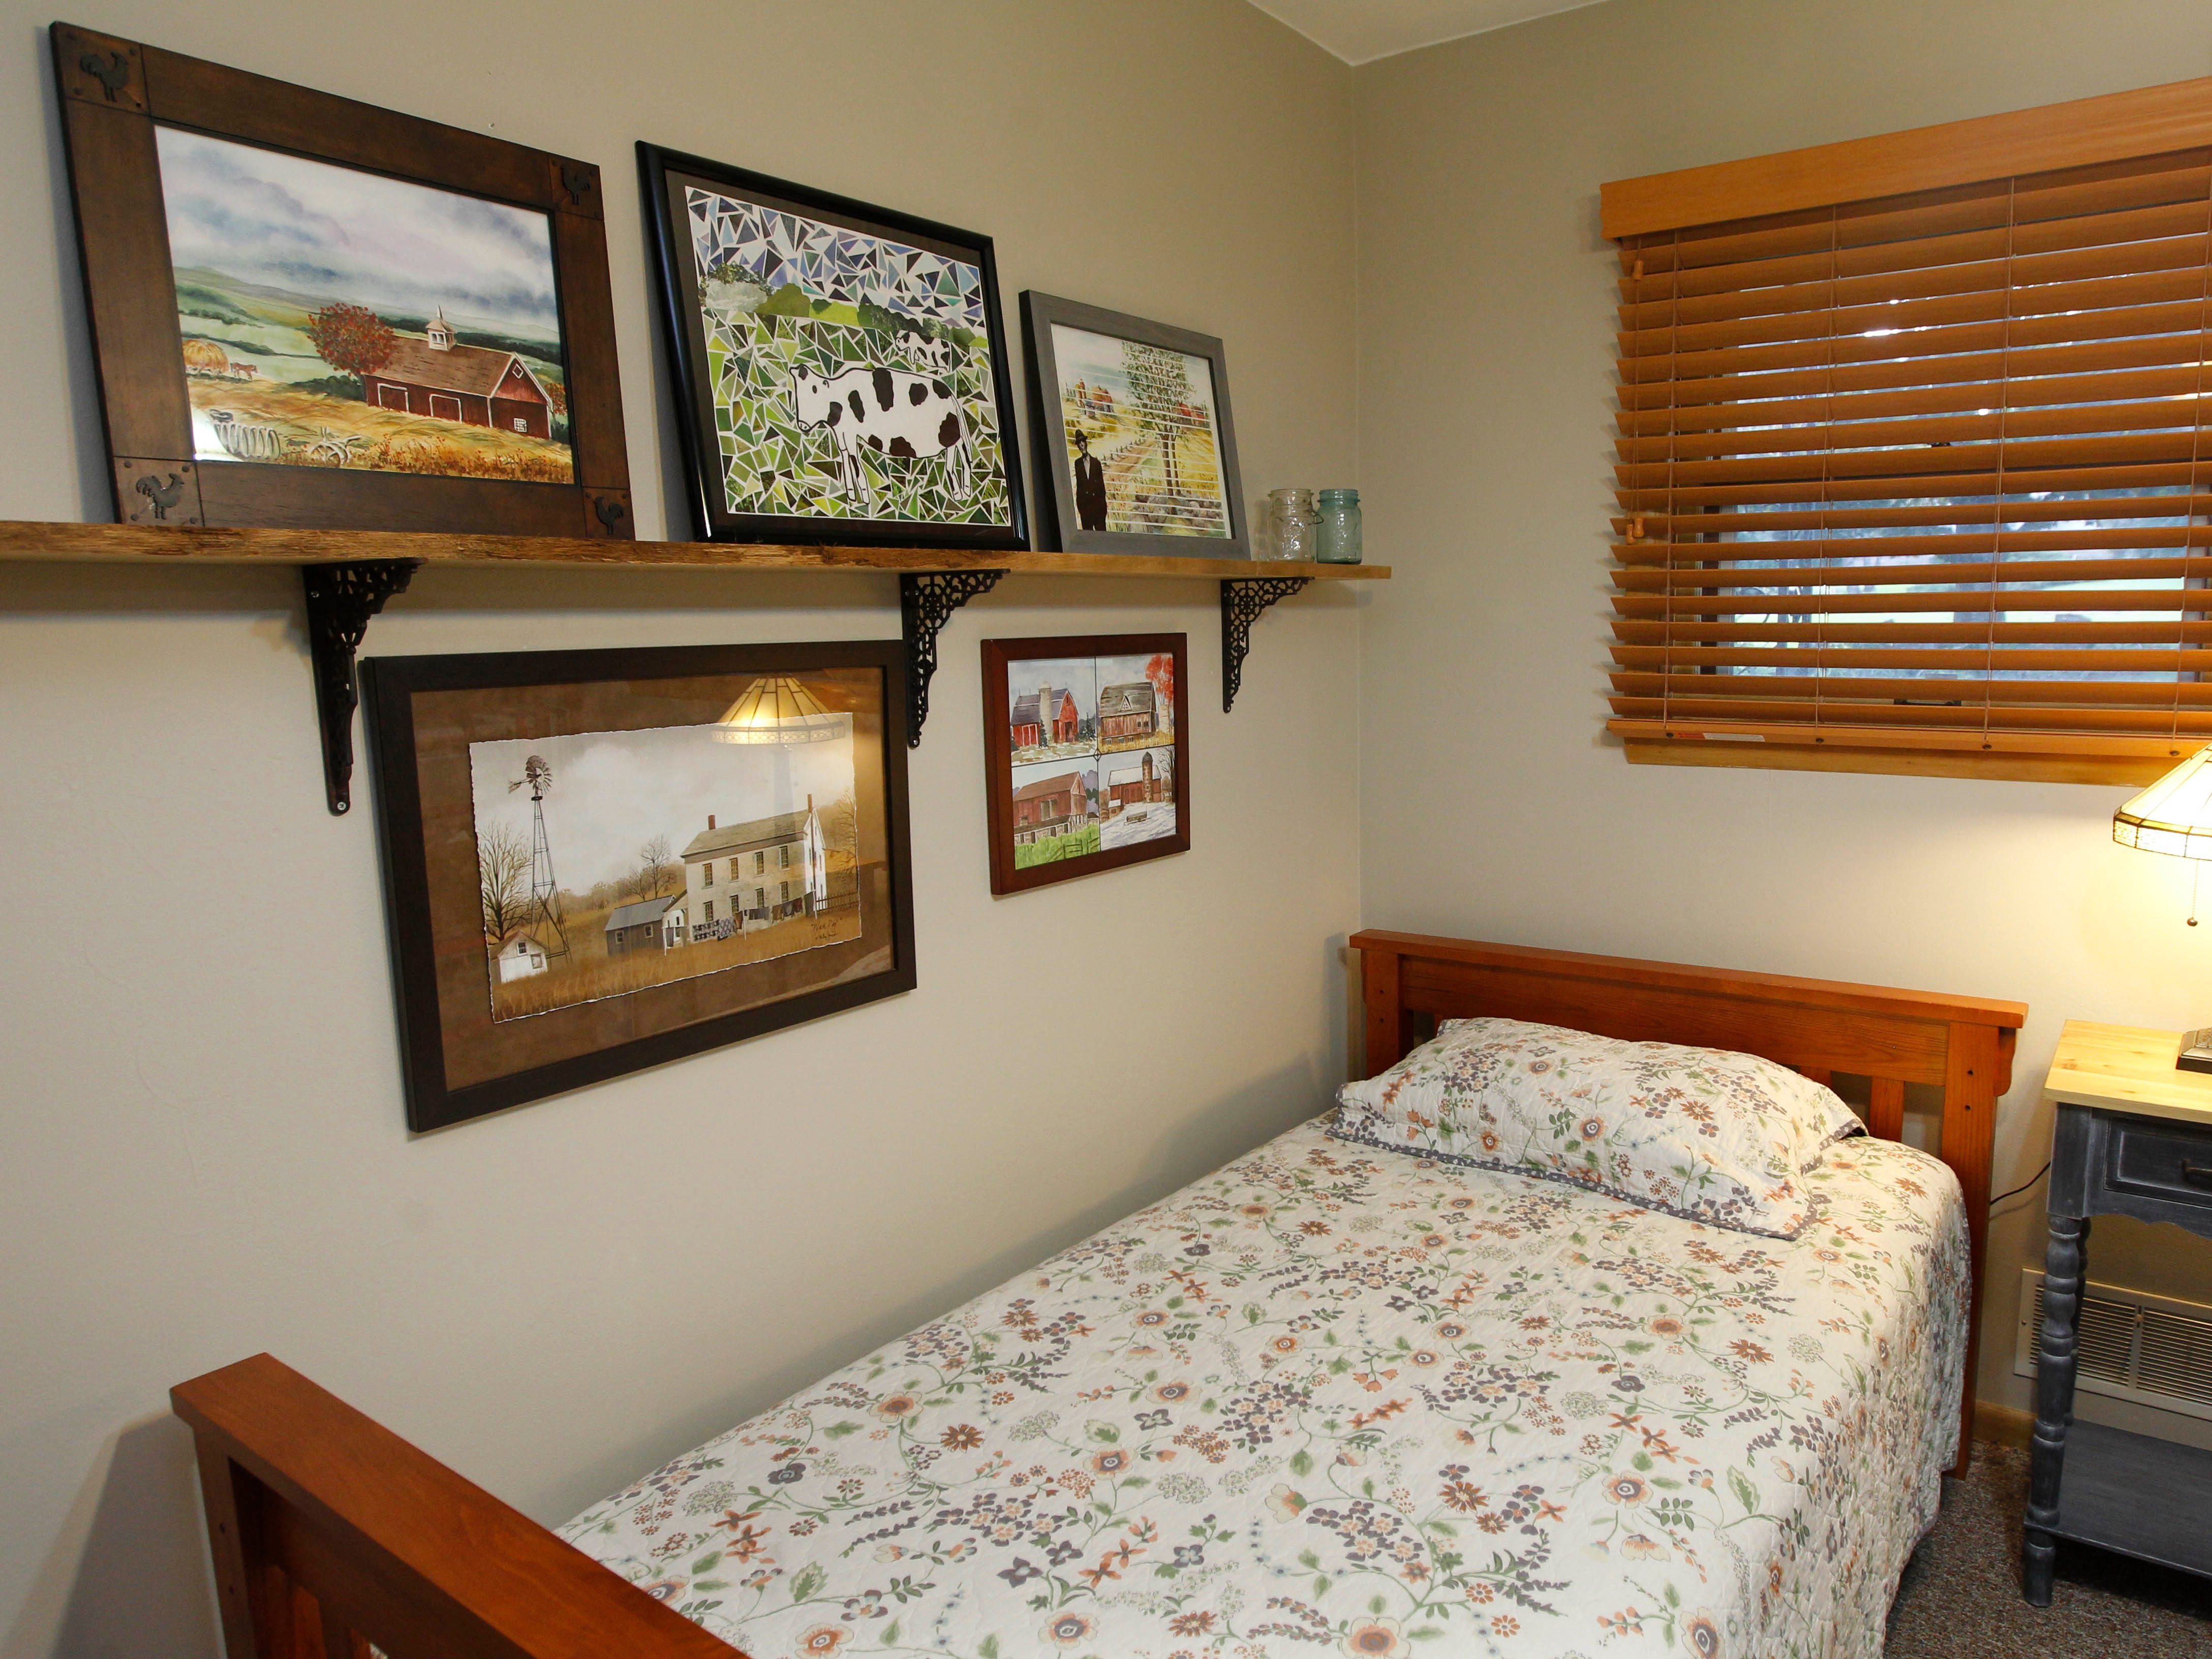 The guest bedroom also displays artwork.